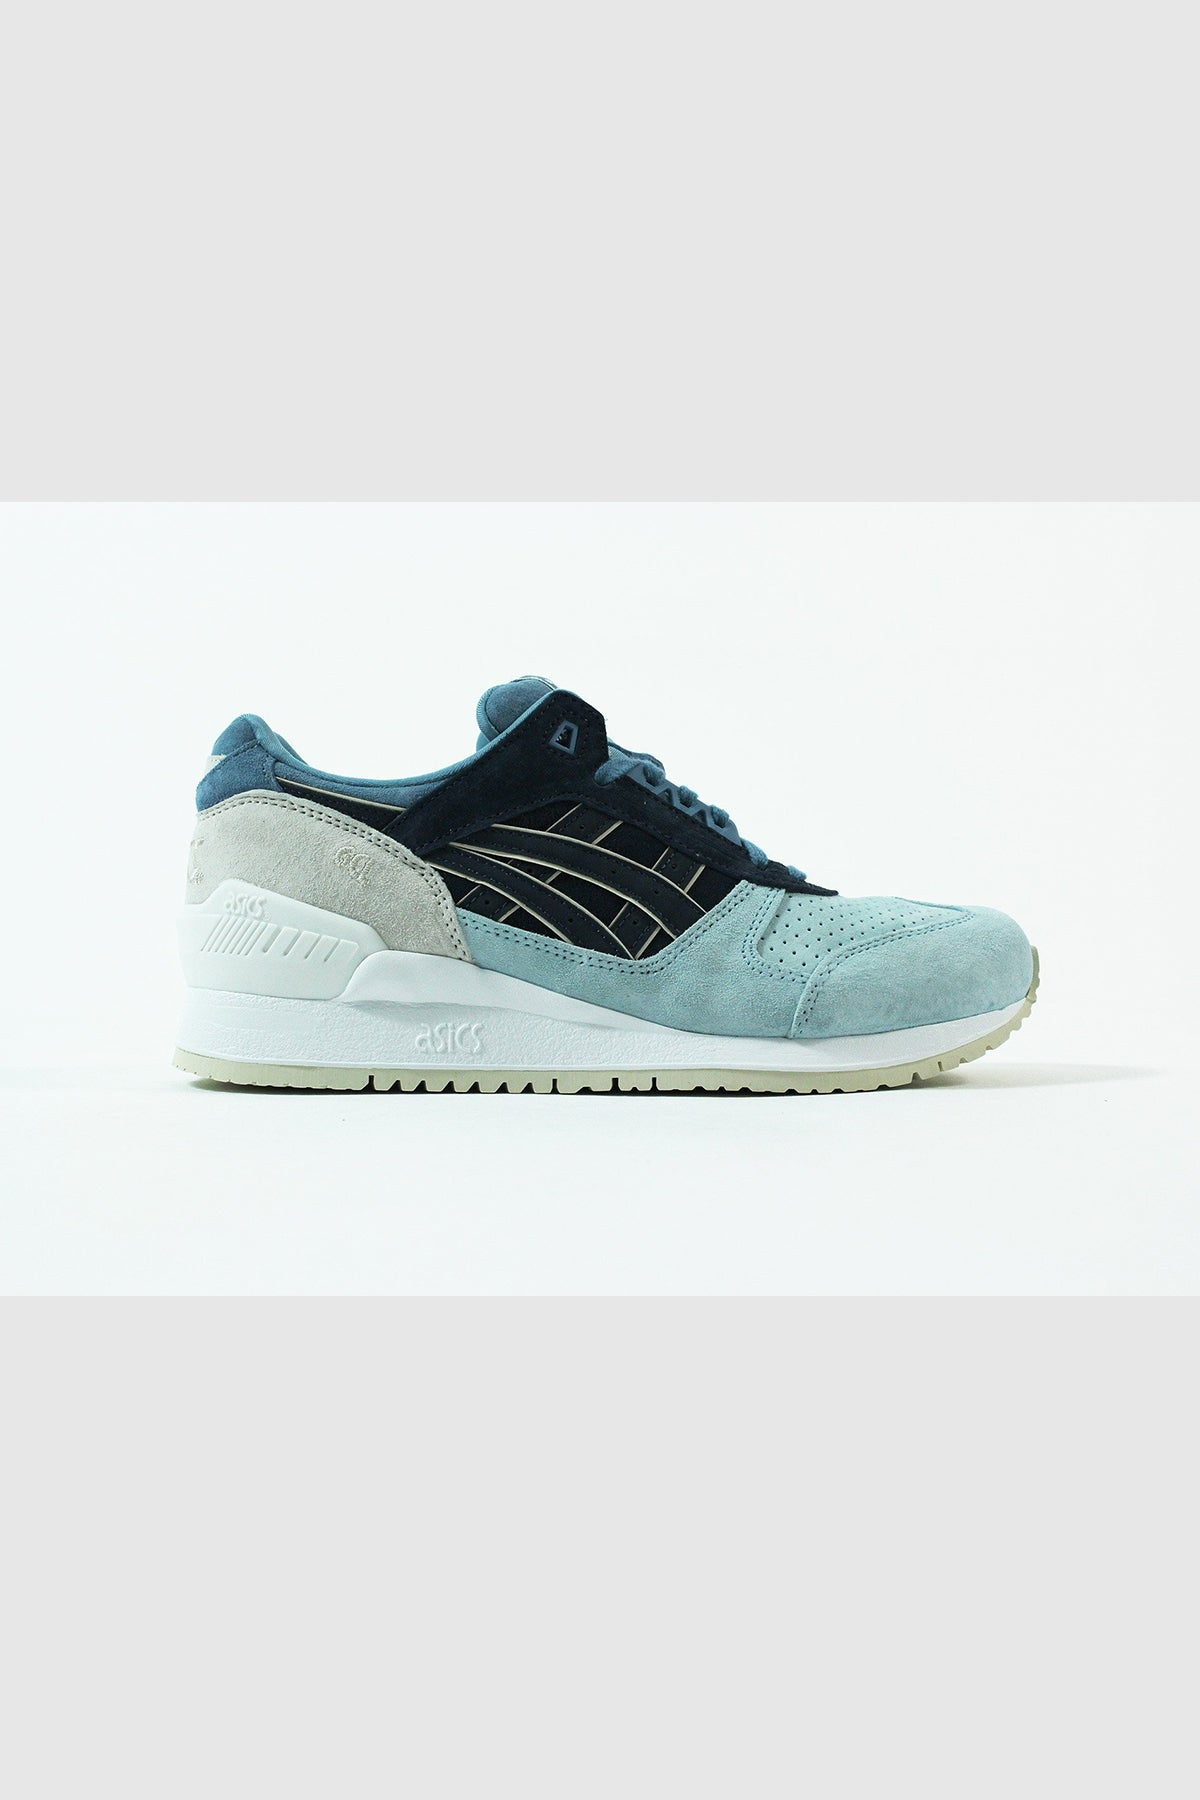 Asics - Gel Respector (India Ink/ India Ink)